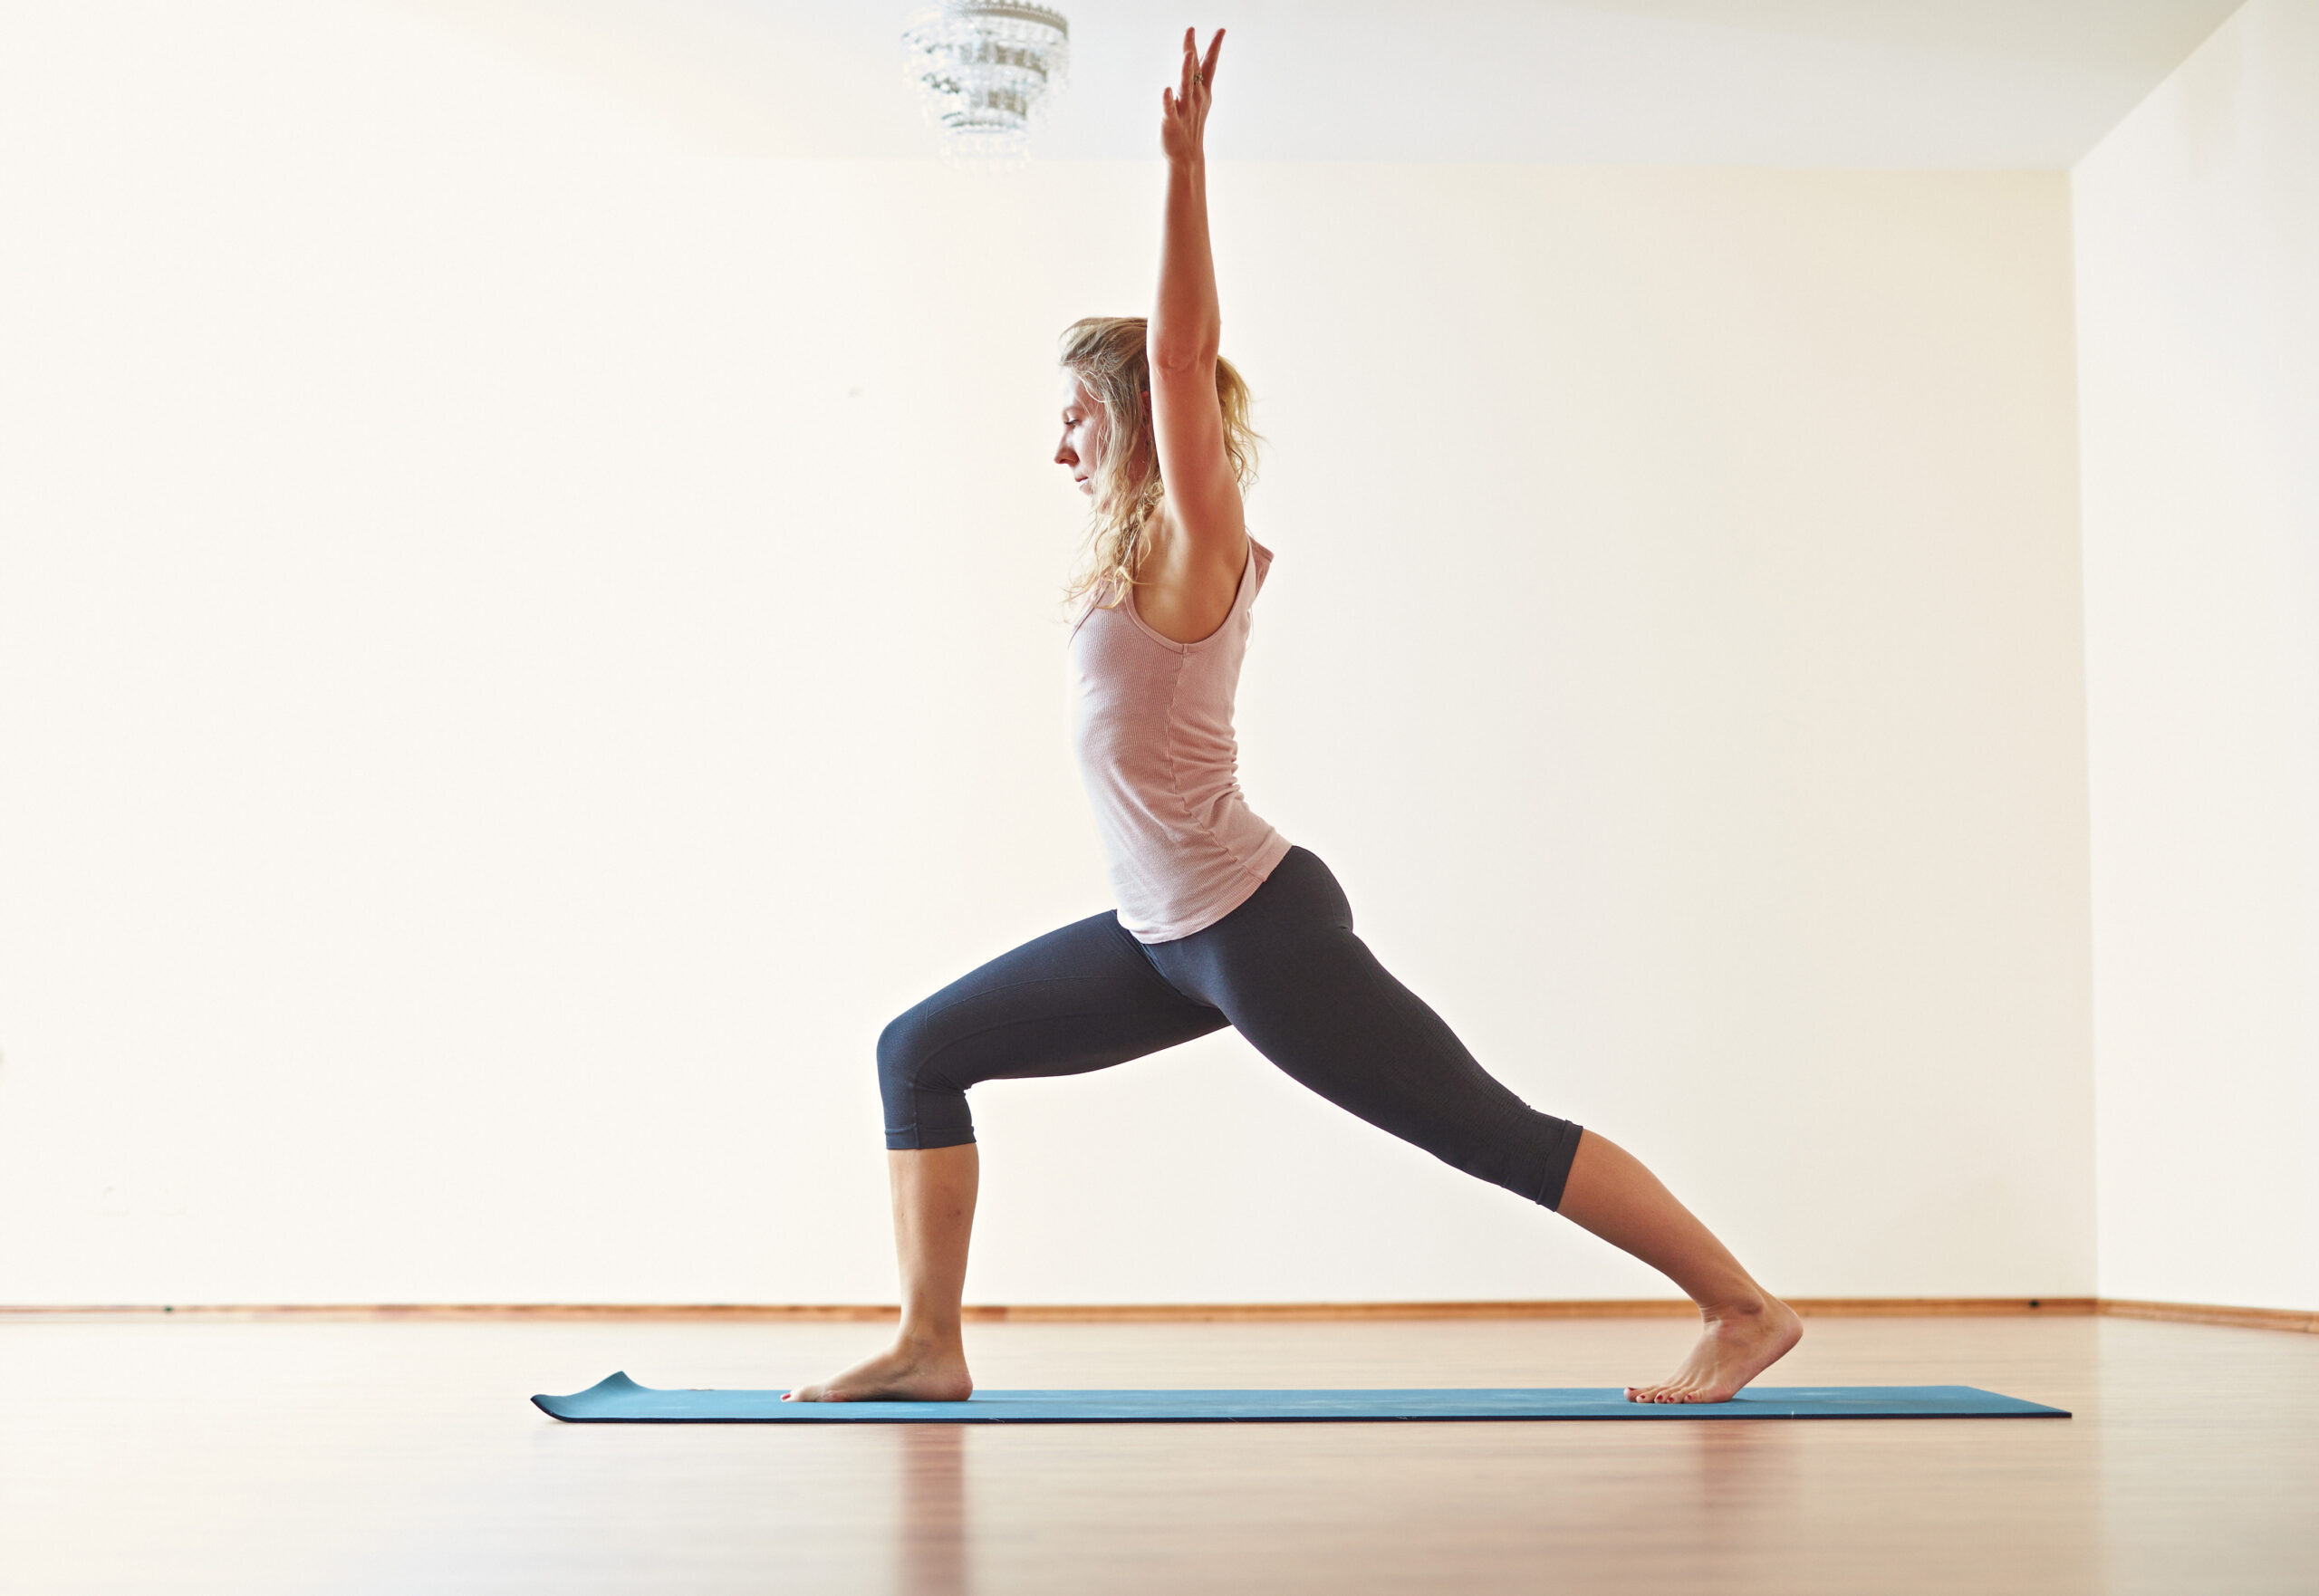 How Often Should I Practice Yoga?